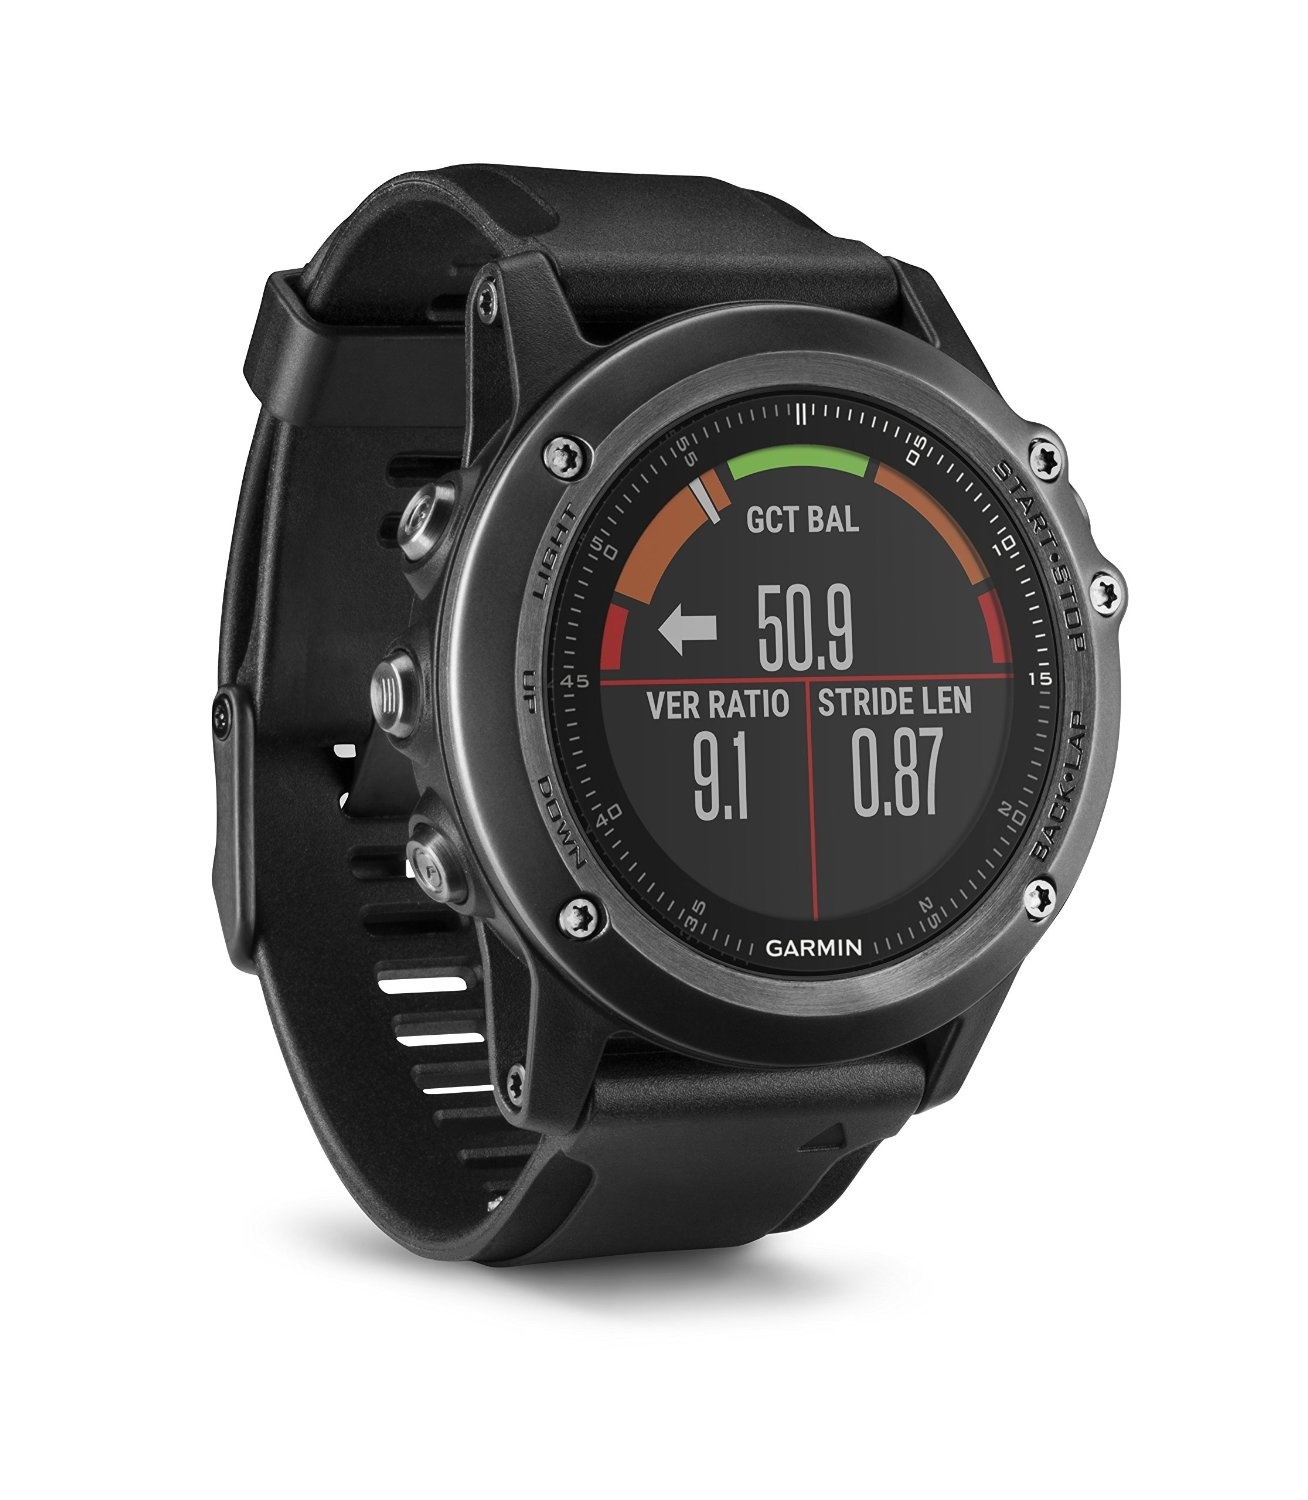 Garmin Activity Tracker Fitness Performer Image 2